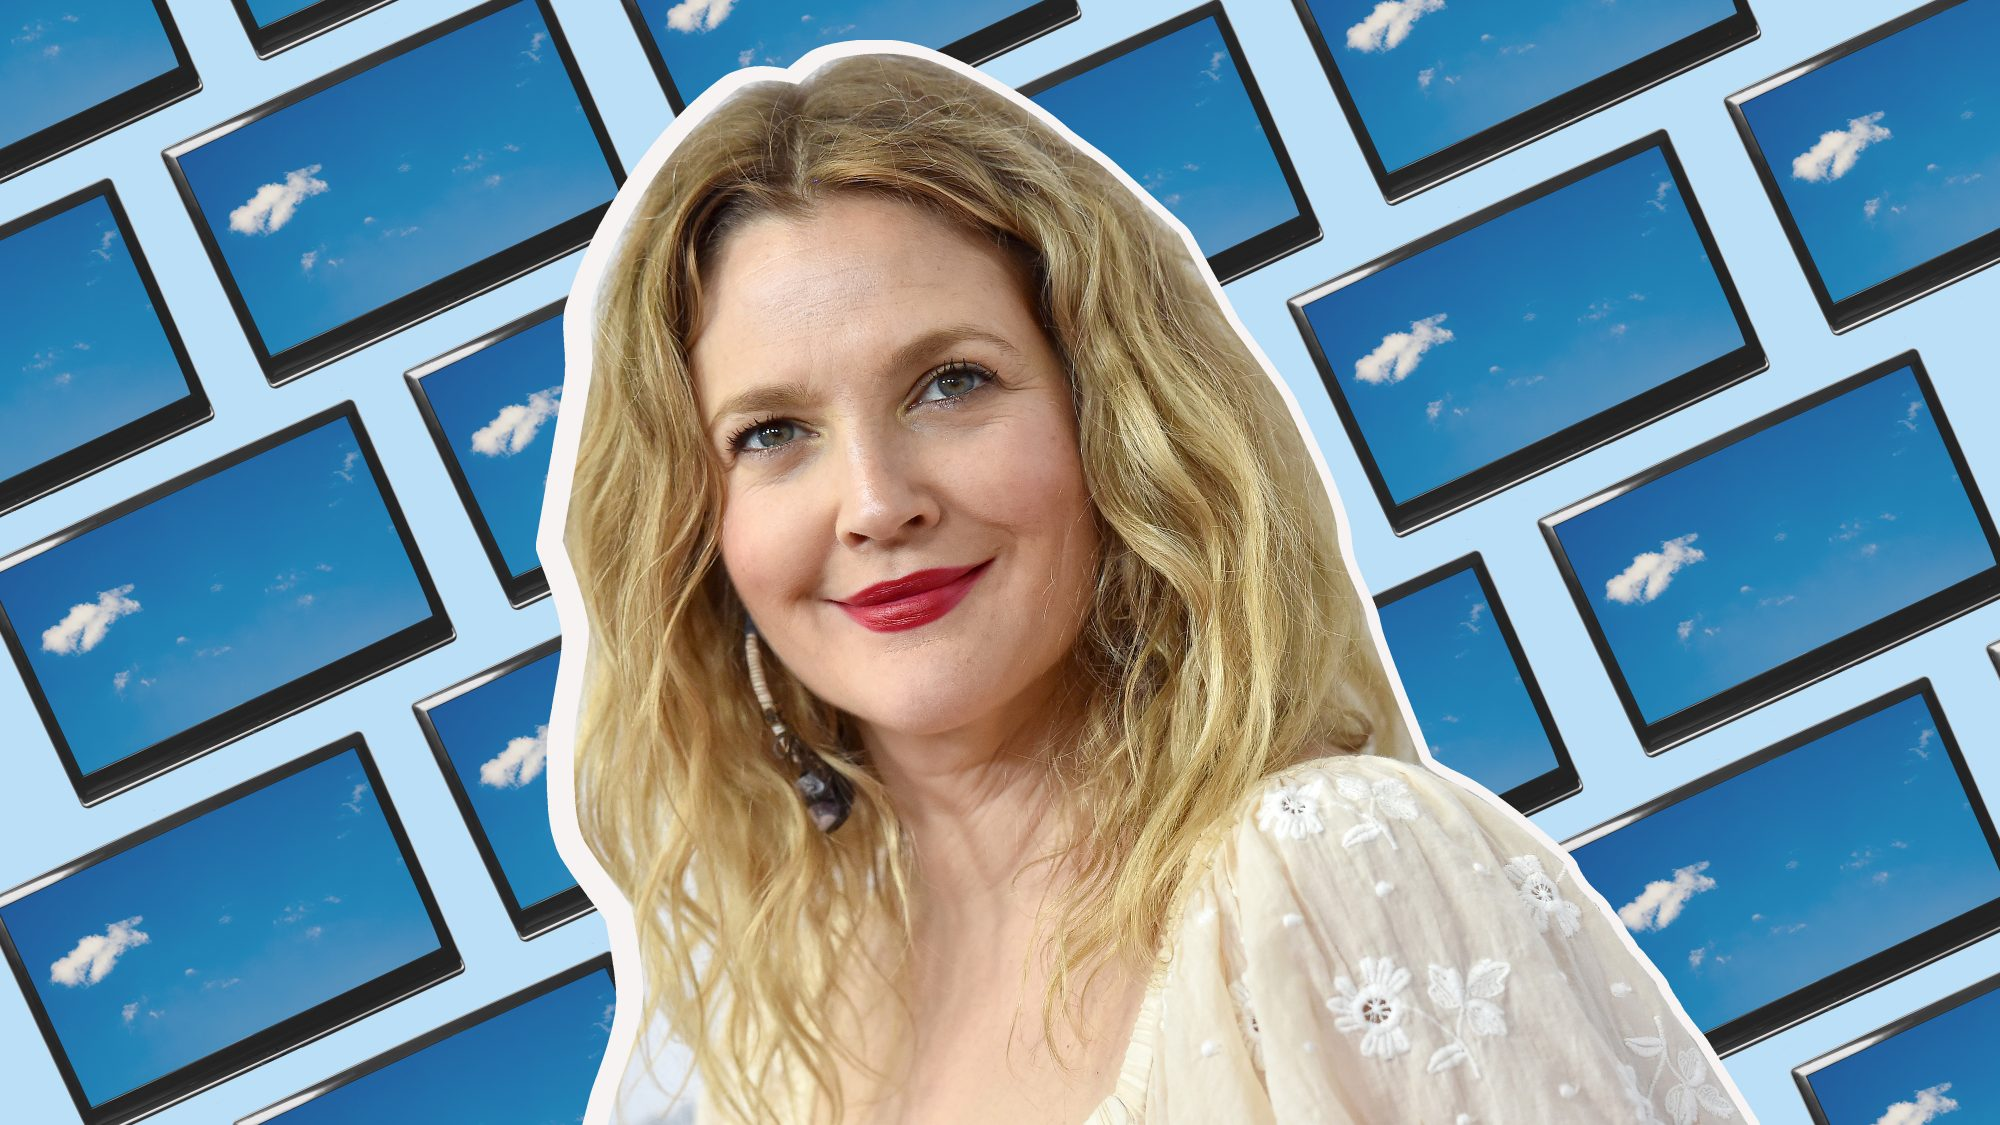 Drew Barrymore and tv screens